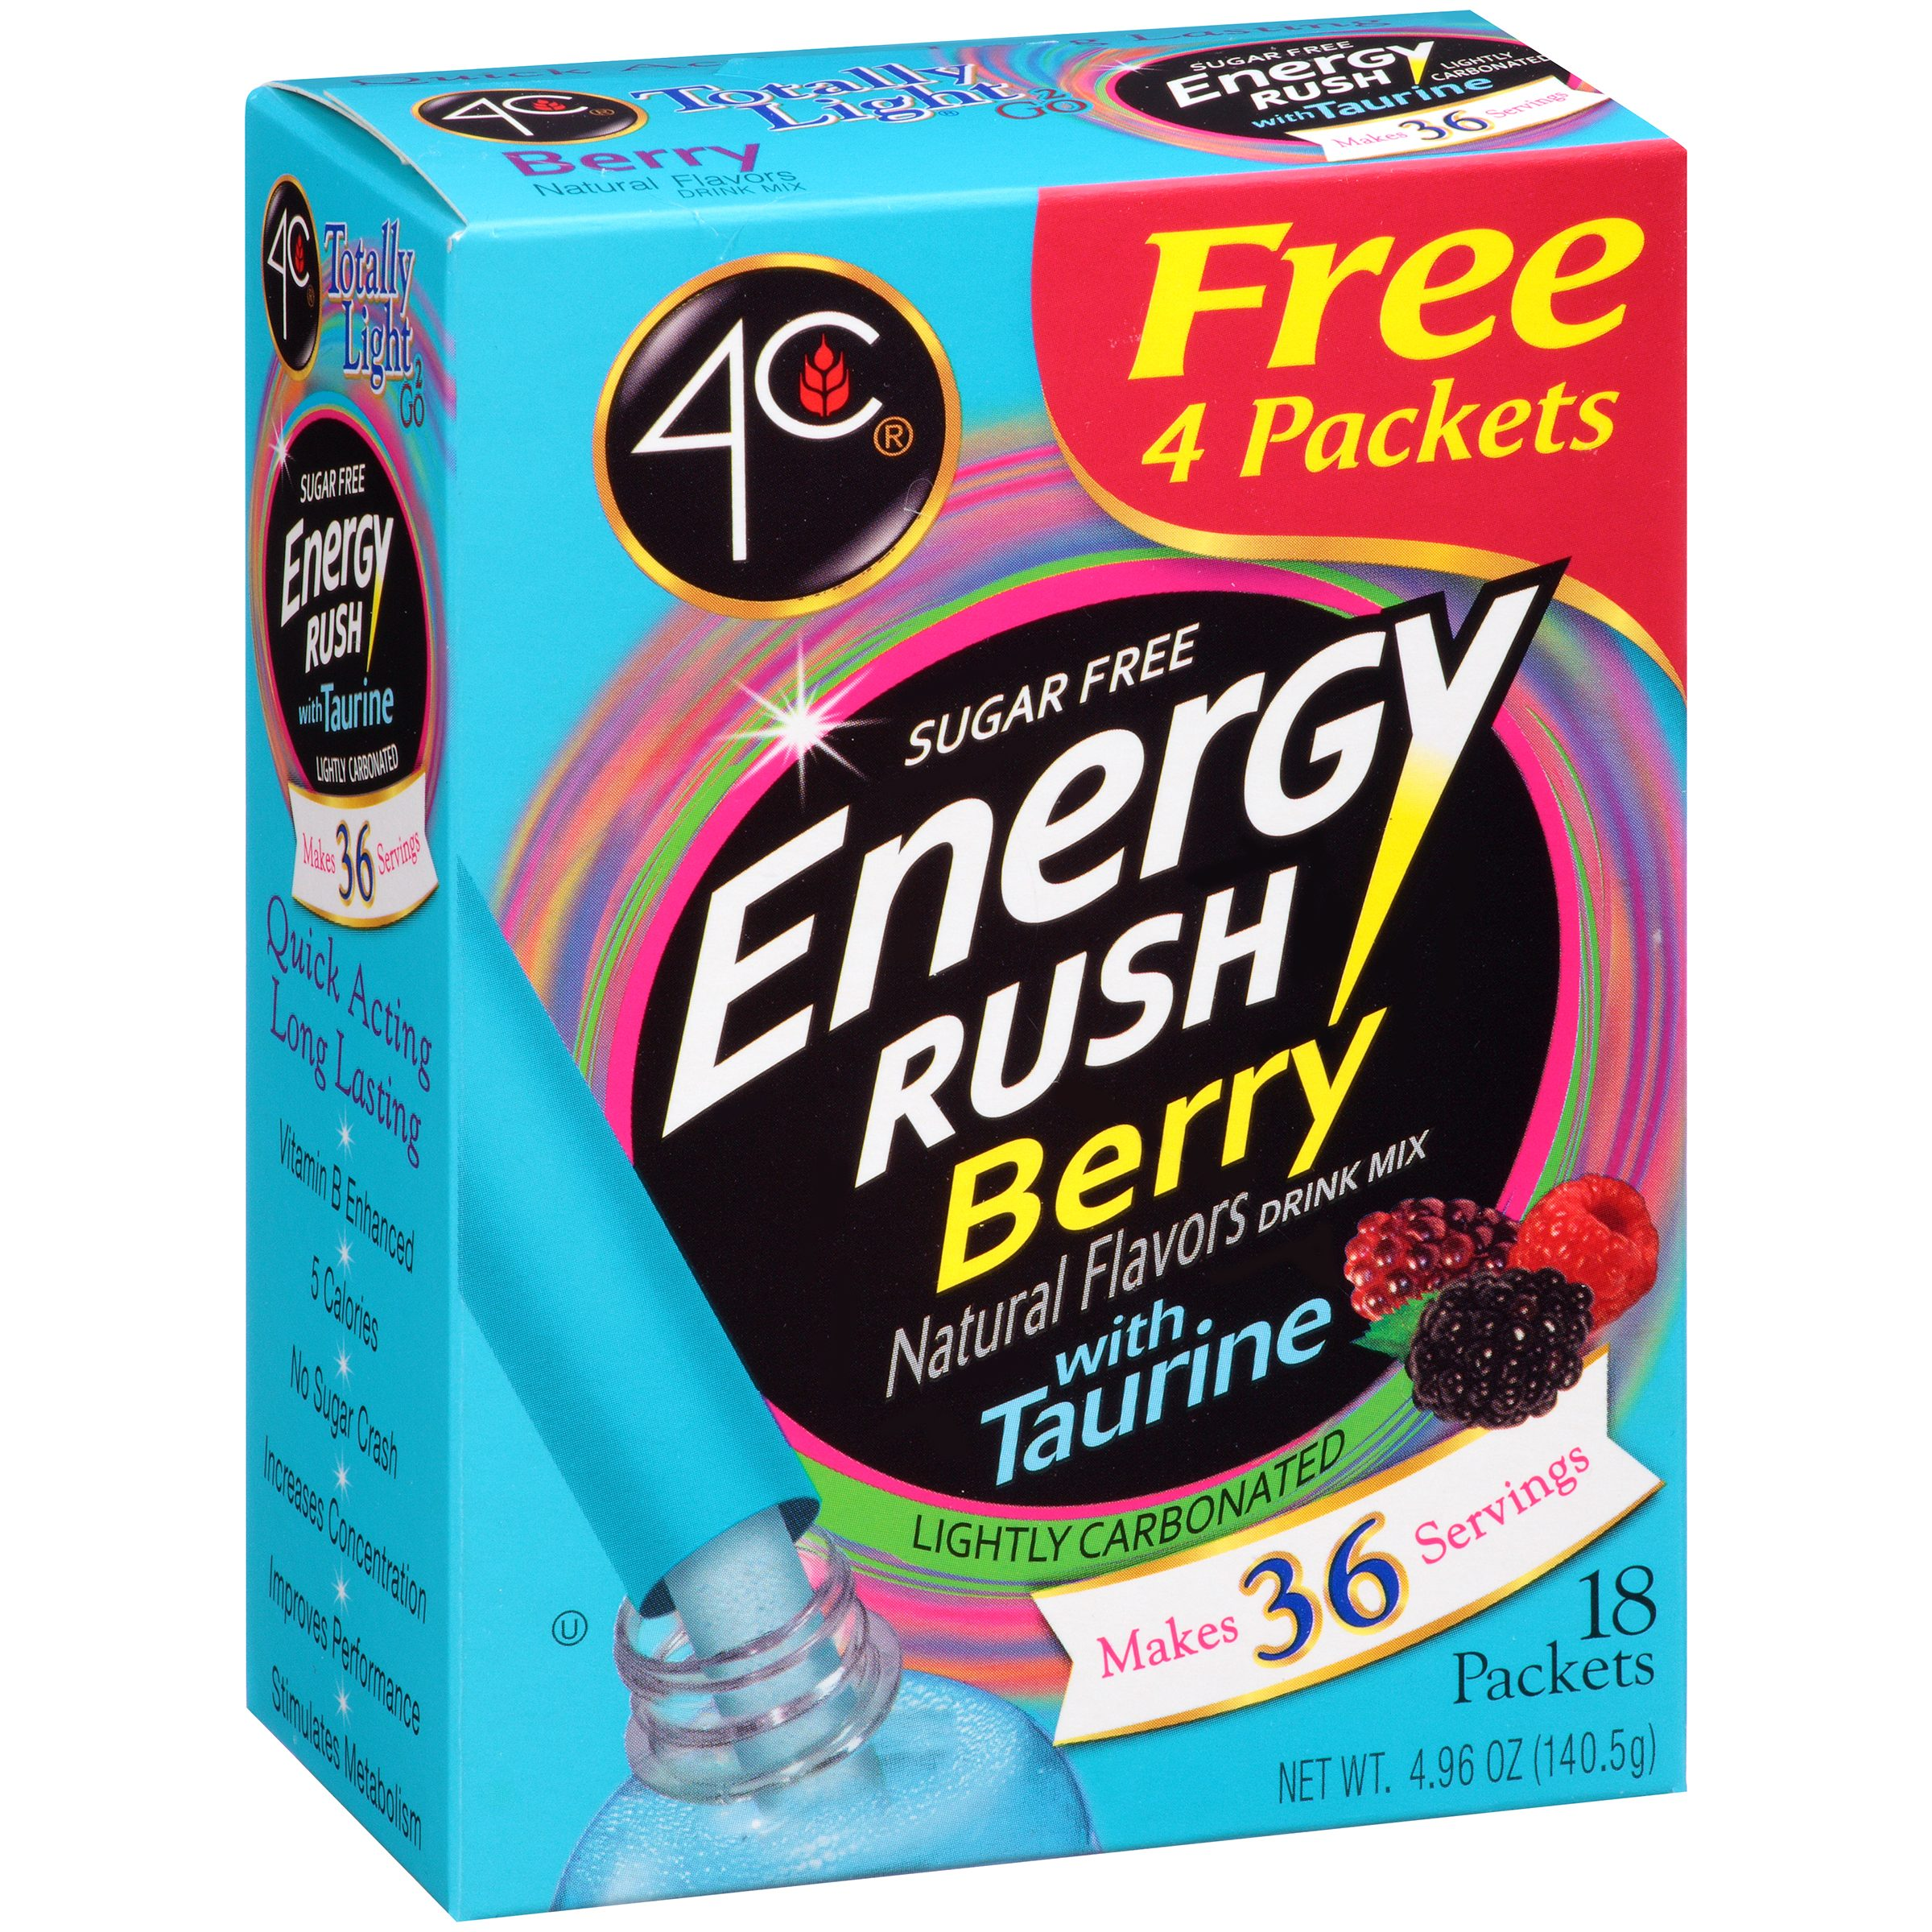 4C Totally Light 2 go Energy Rush Berry Drink Mix, 14 ct